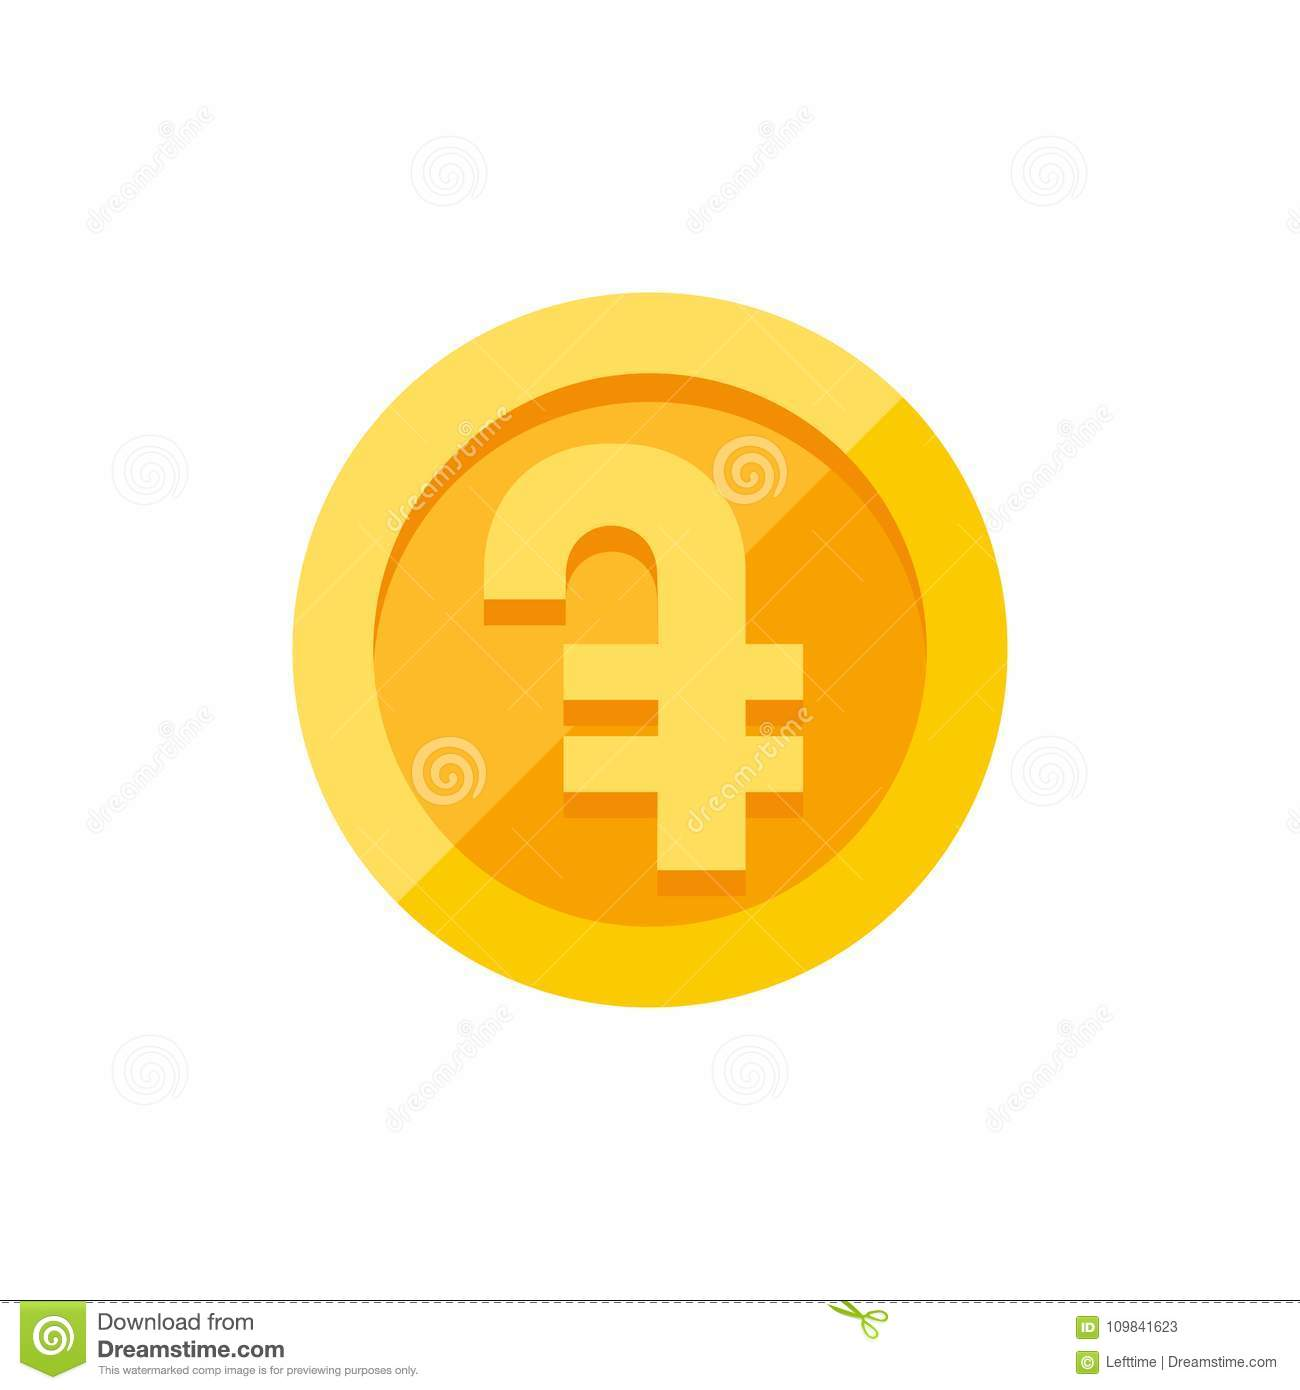 Armenian Dram Currency Symbol On Gold Coin Flat Style Stock Vector